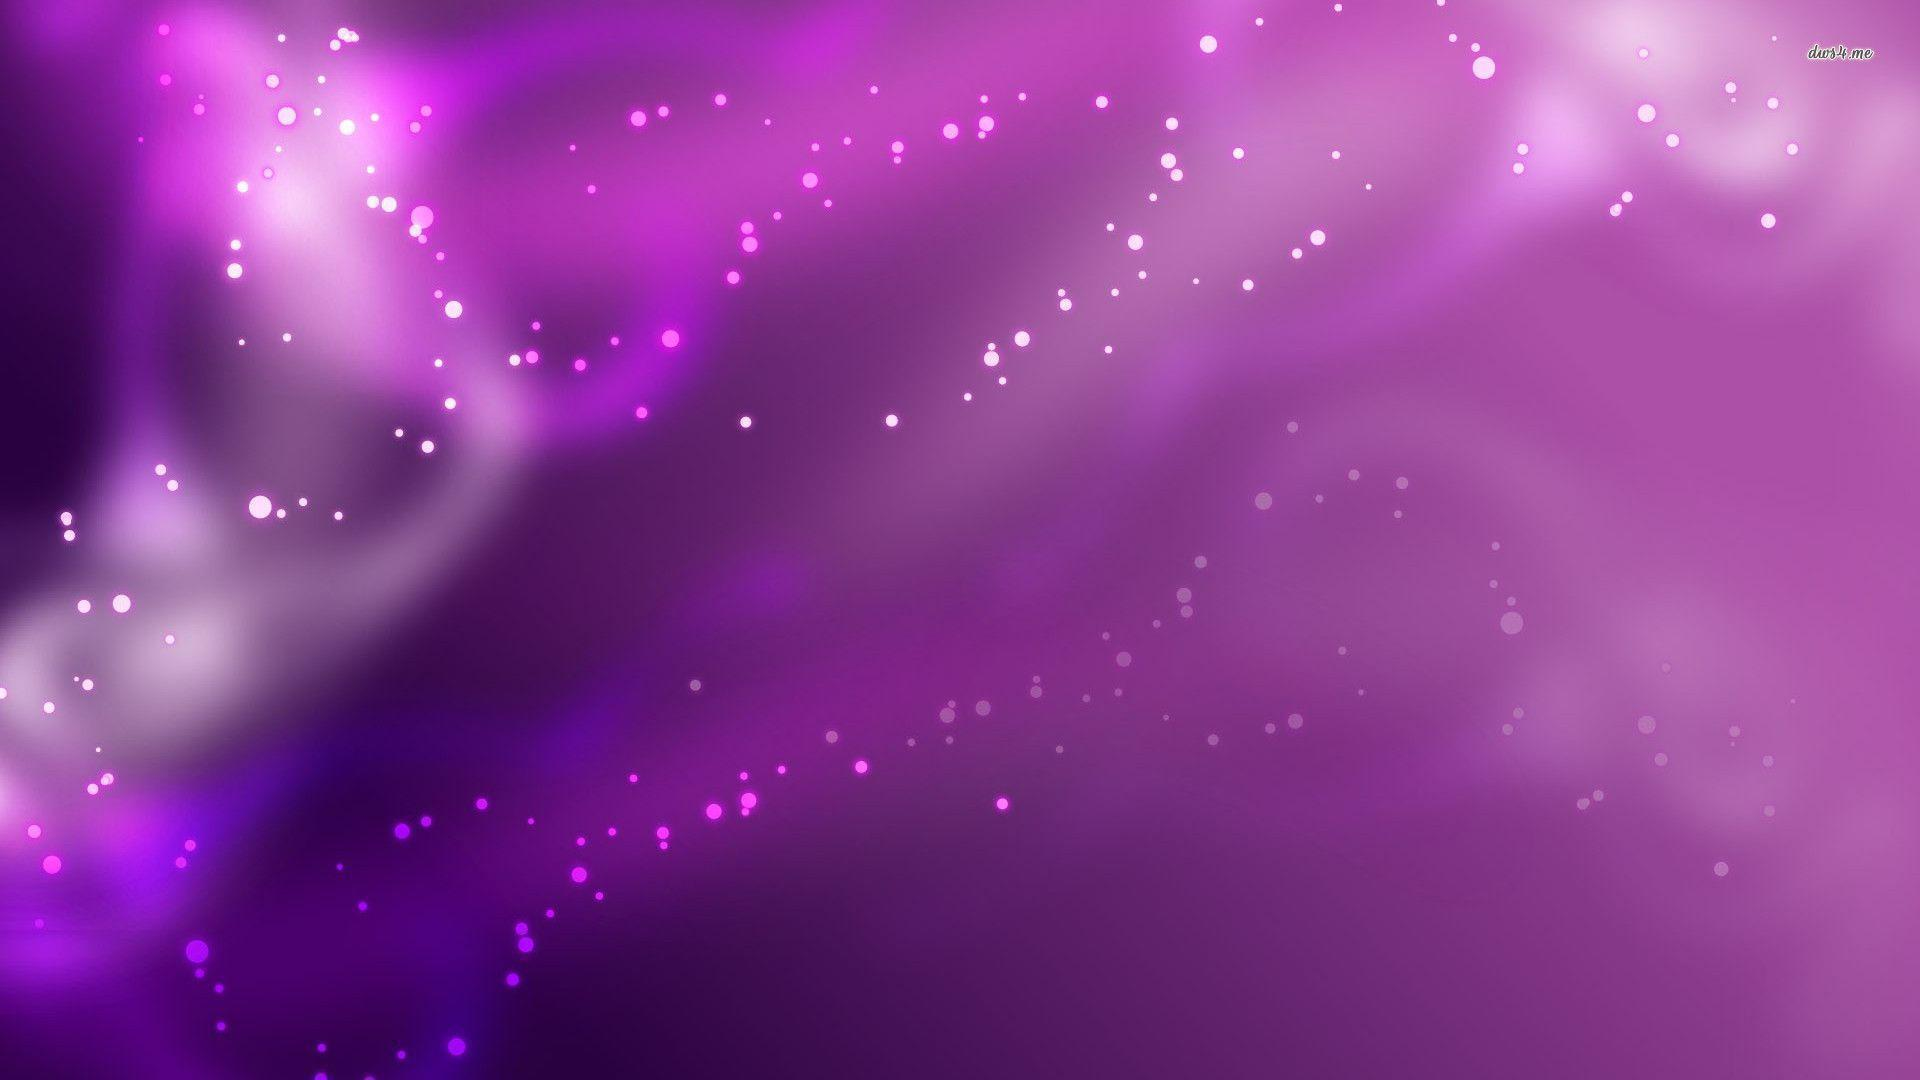 Abstract Purple Backgrounds - Wallpaper Cave